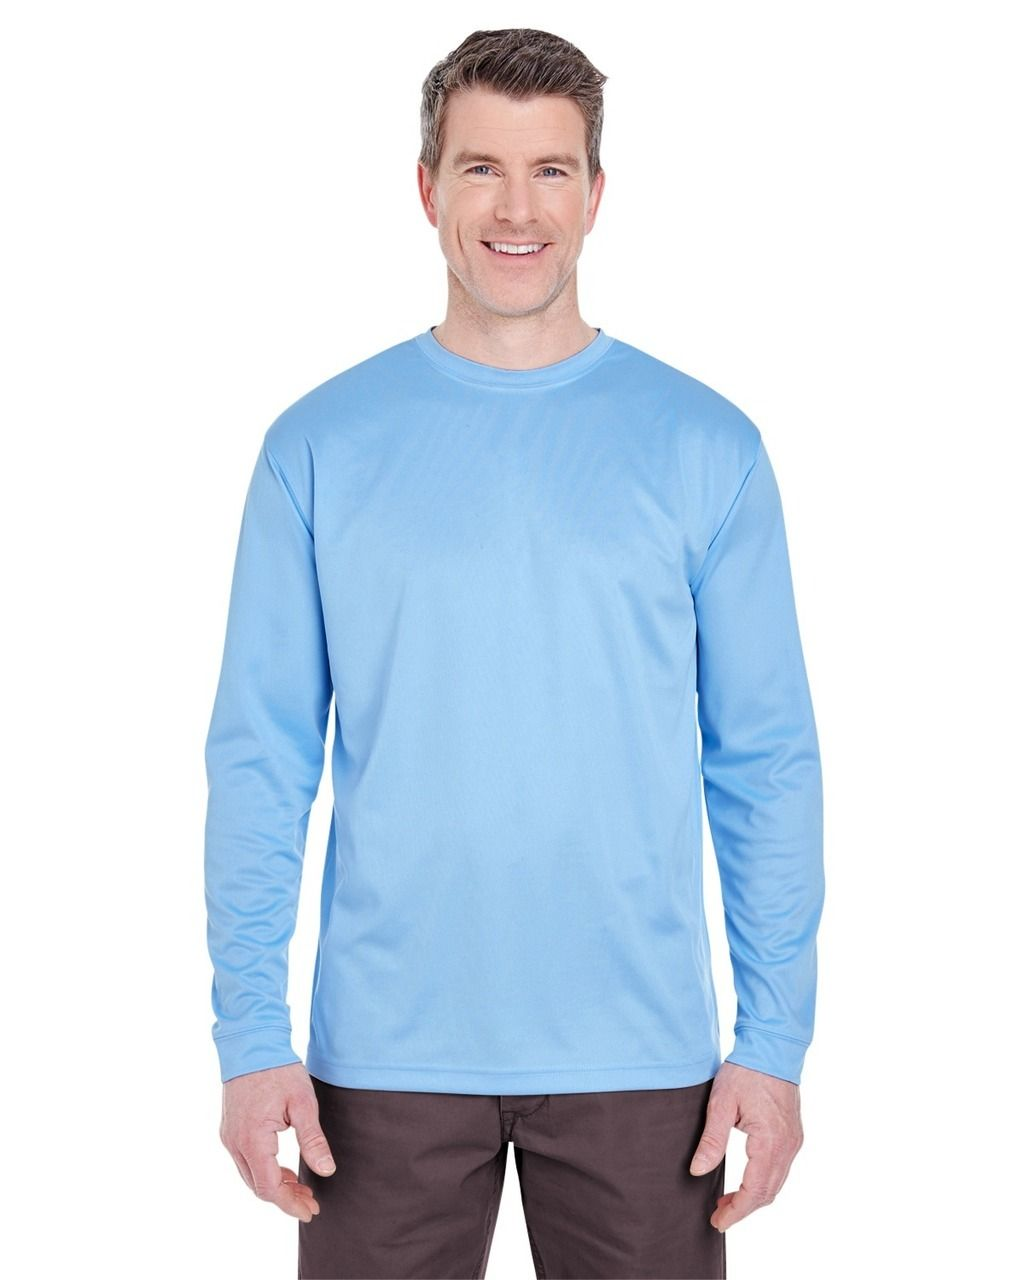 Long sleeve tshirt wicking athletic fit